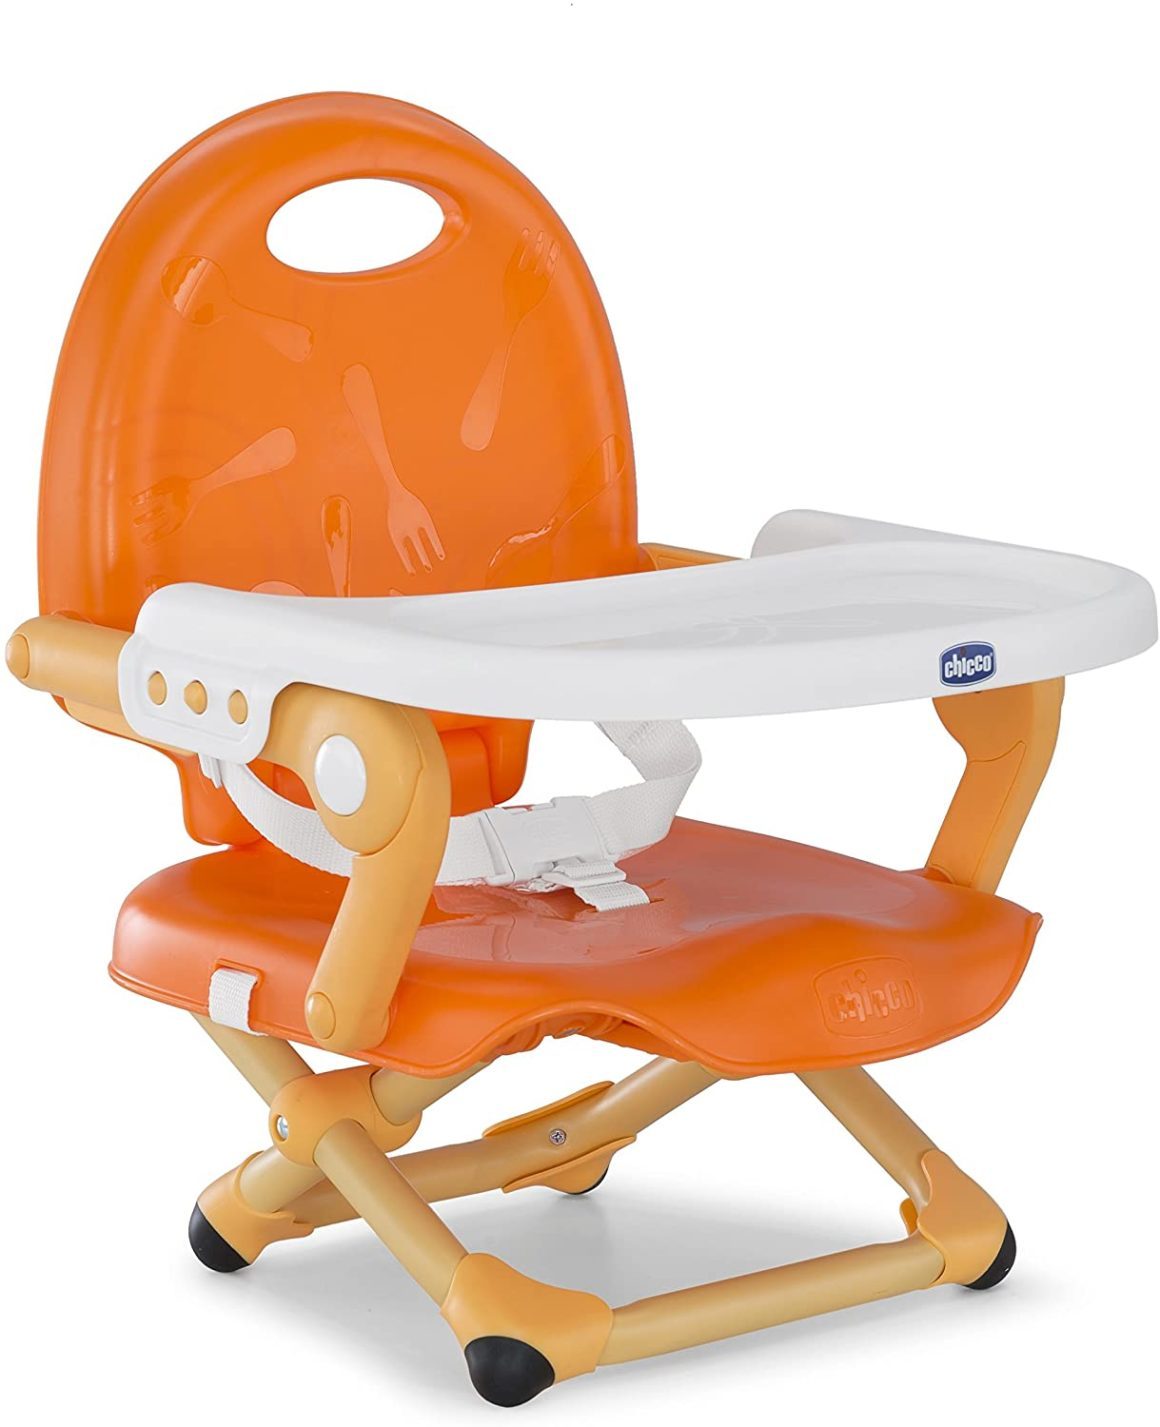 Réhausseur de chaise bébé orange de Mandarino